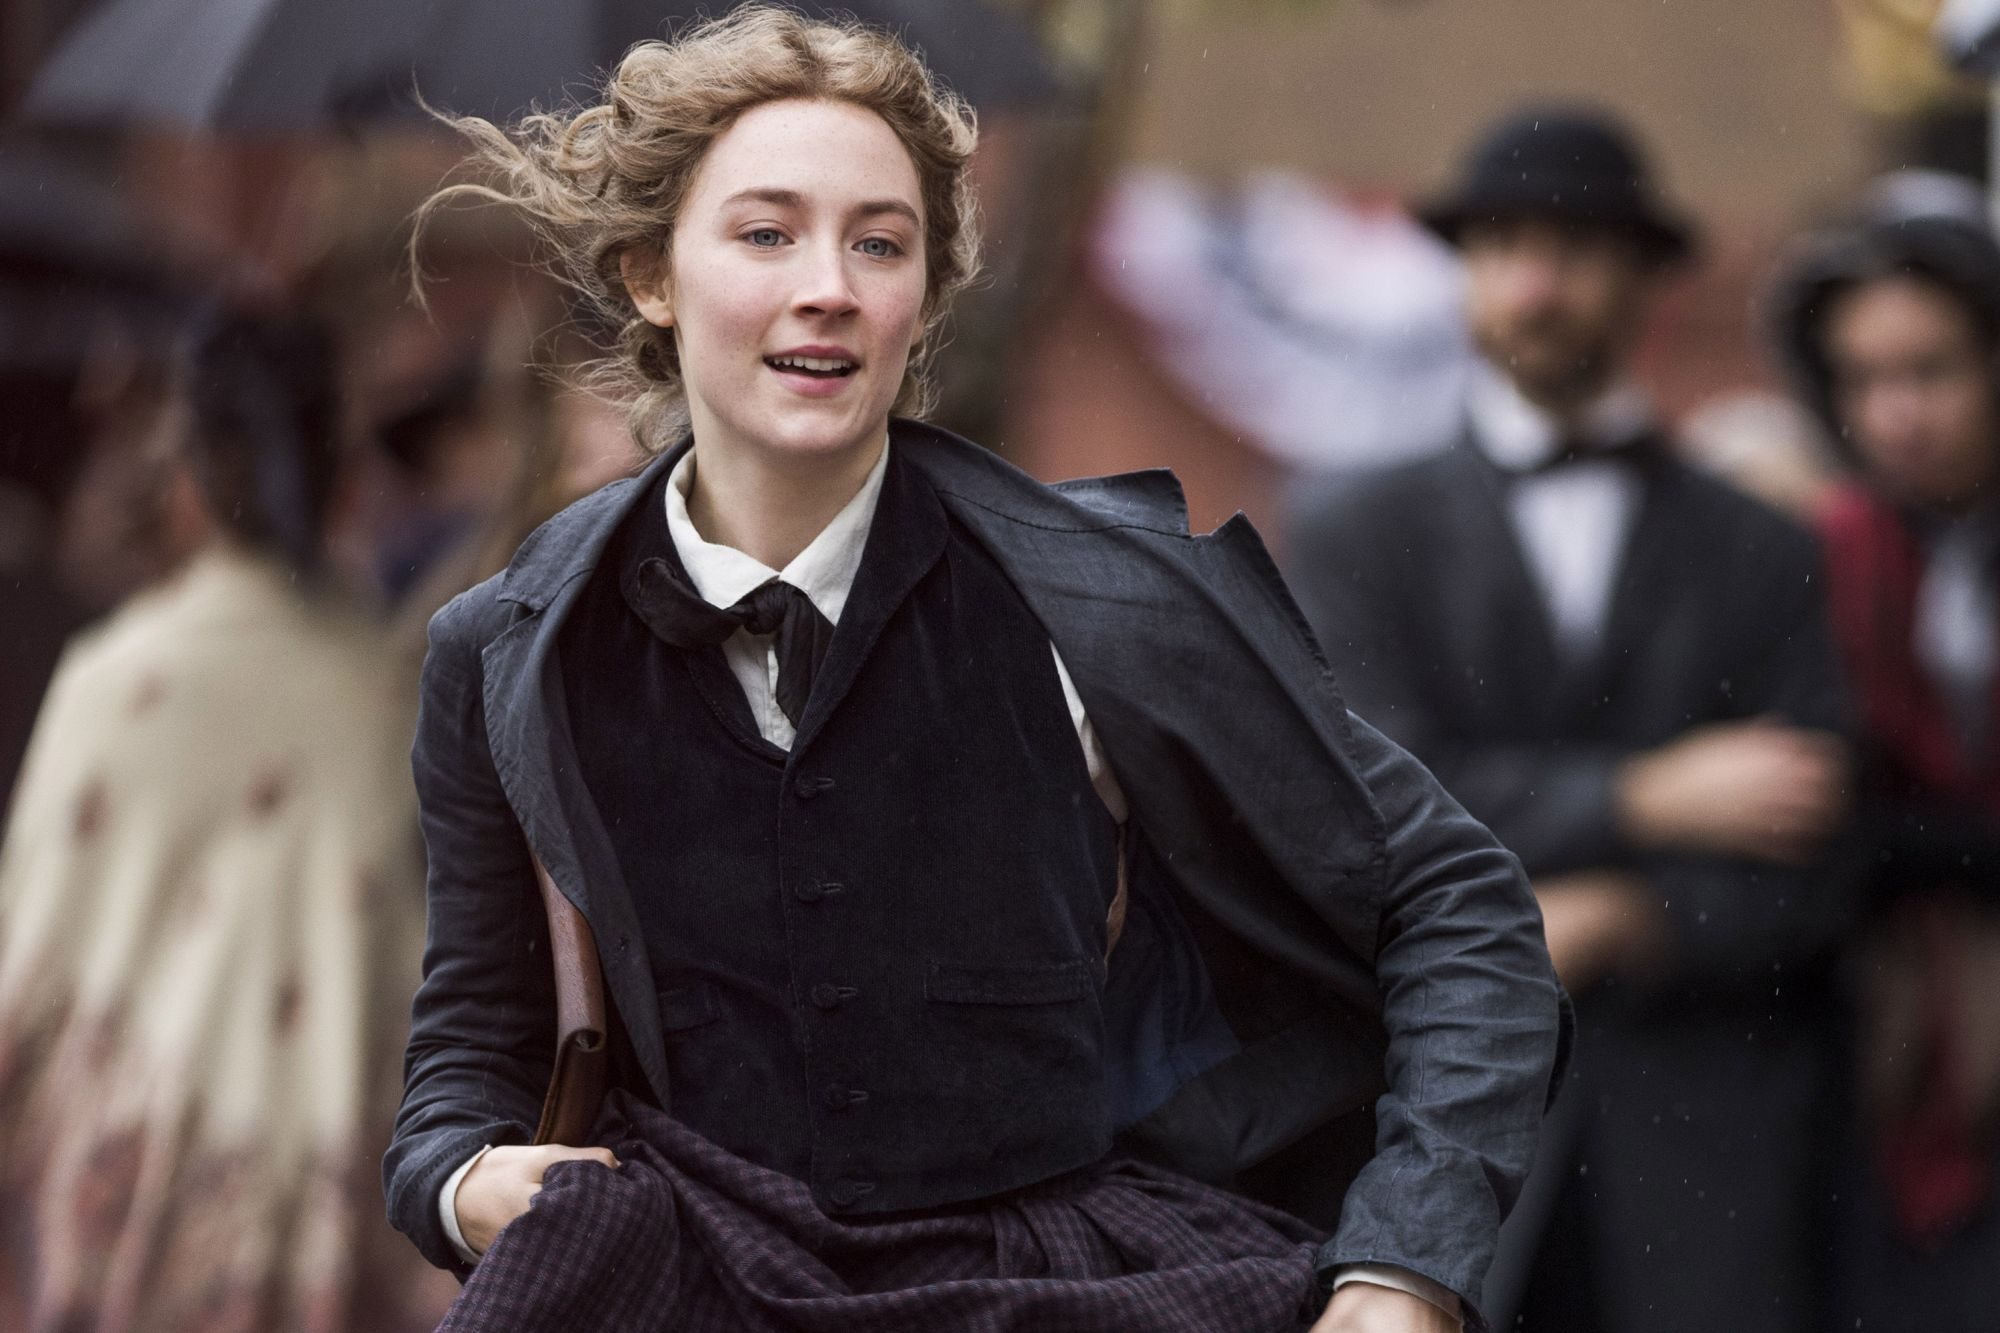 Jo March interpretata da Saoirse Ronan